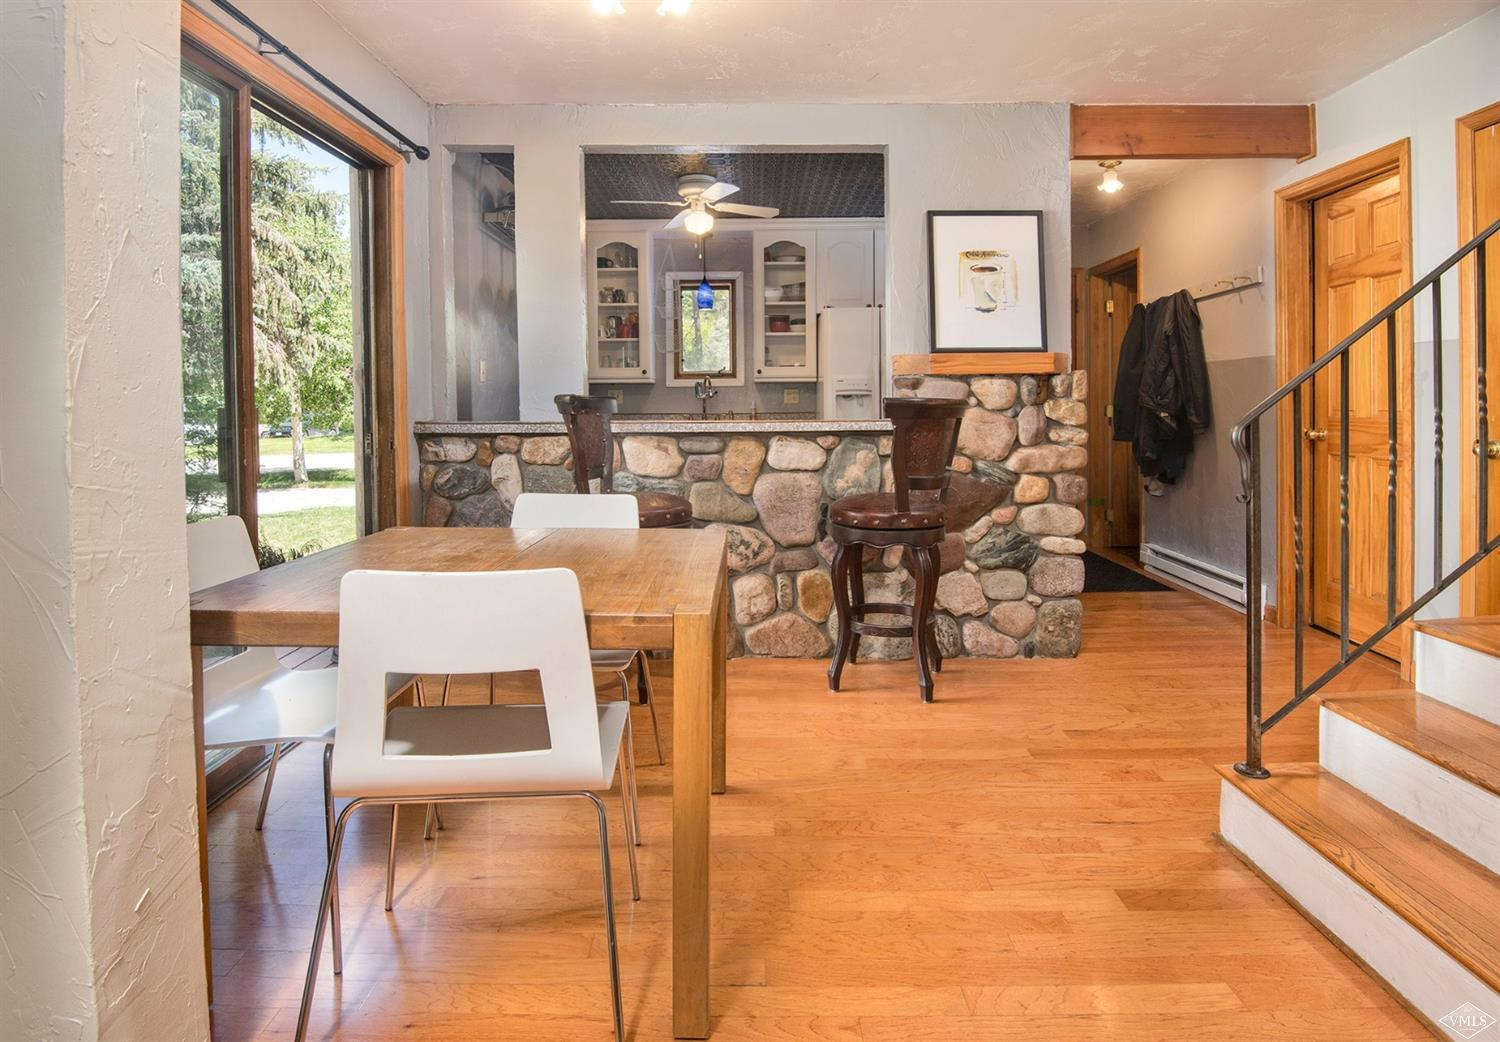 Bright, sunny, conveniently located between Beaver Creek and Vail, this 1210 square foot, 3 bedroom condo is ideal for a starter home, weekend getaway or for the investor wanting a seasonal rental. Giant side deck provides ample room for entertaining. Wood burning fireplace, W/D, attic storage and more! Master bedroom features en-suite bath and private balcony. Lower level pre-plumbed for additional half bath! Plus all that Eagle-Vail offers: pool, golf, playground, comm. garden, plus!